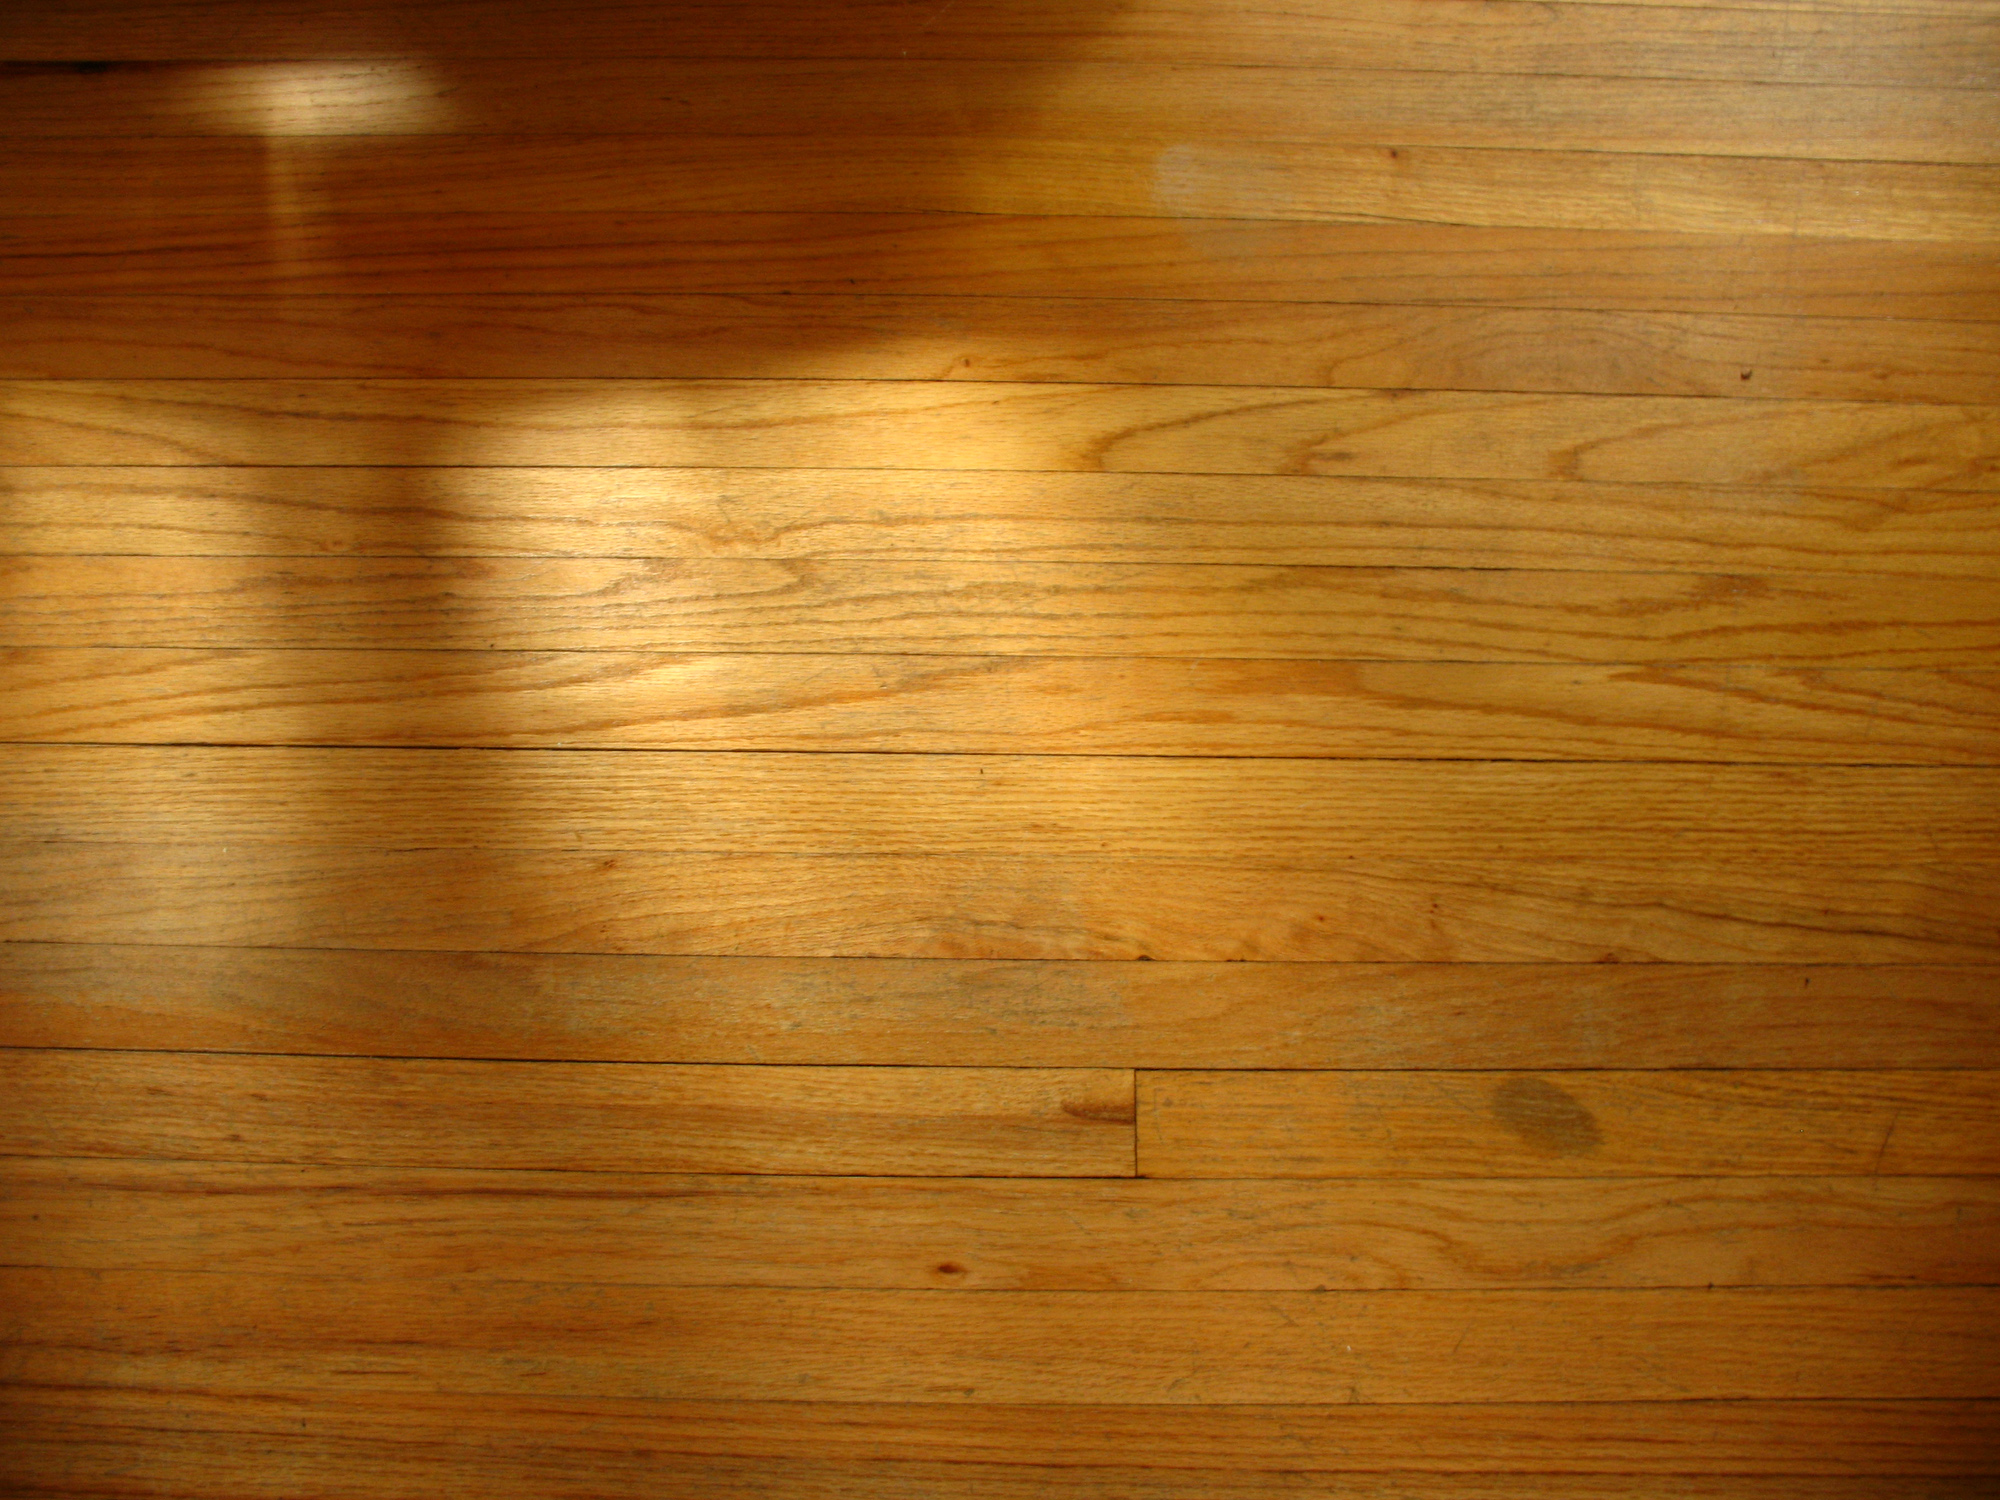 wood floor wallpaper sf wallpaper